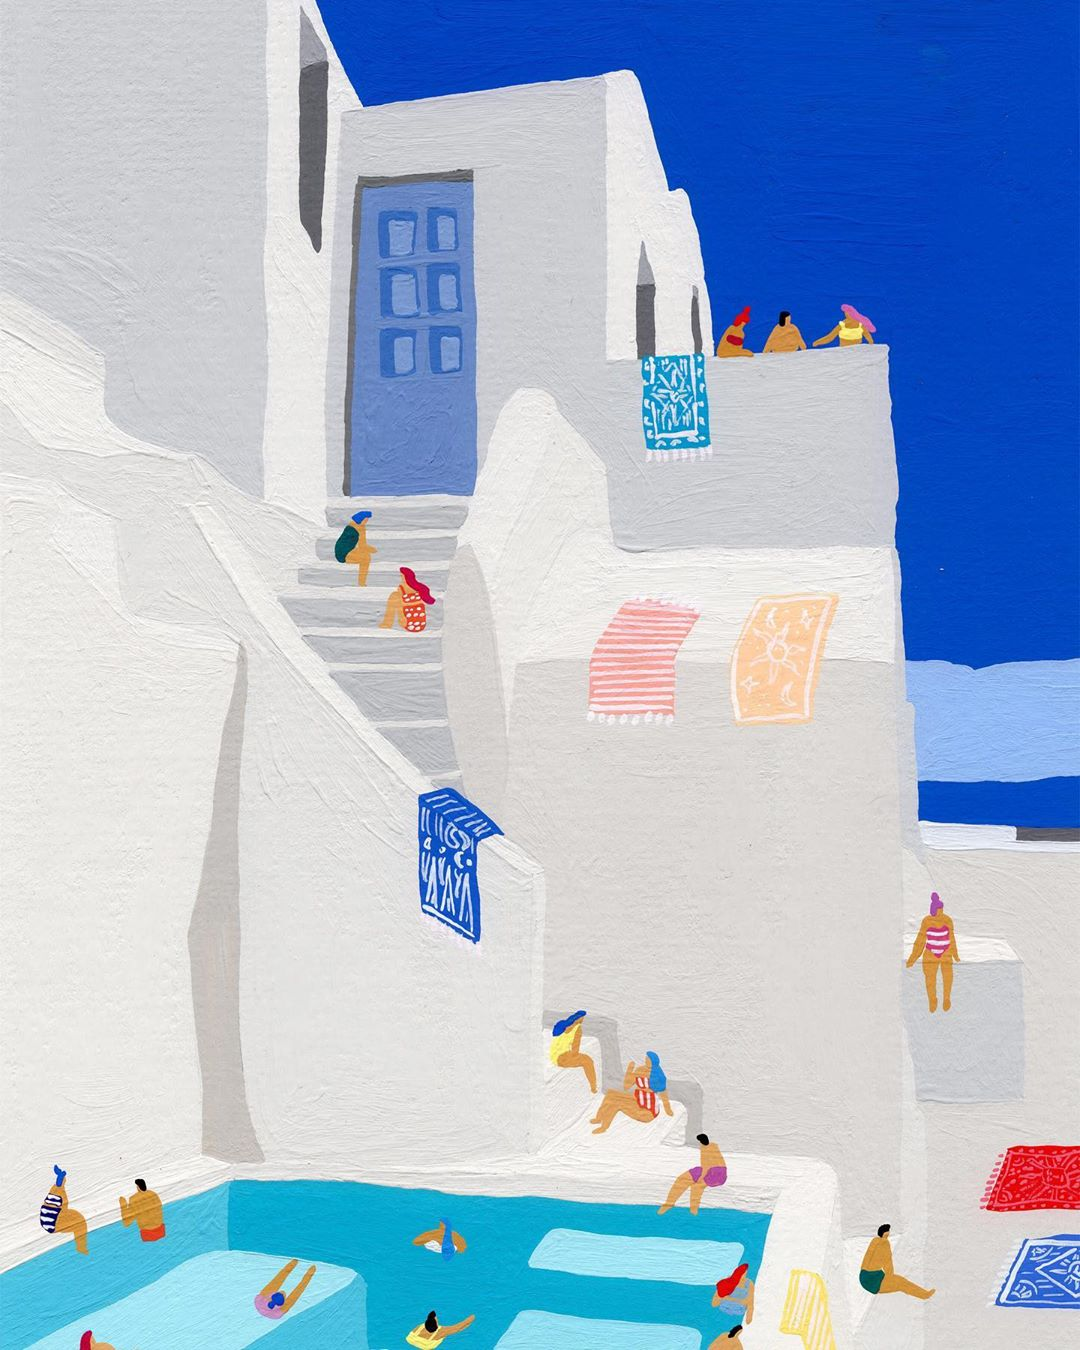 These Painted Sun-Soaked Scenes Will Make You Want to Pack a Bag (Like, Right Now)